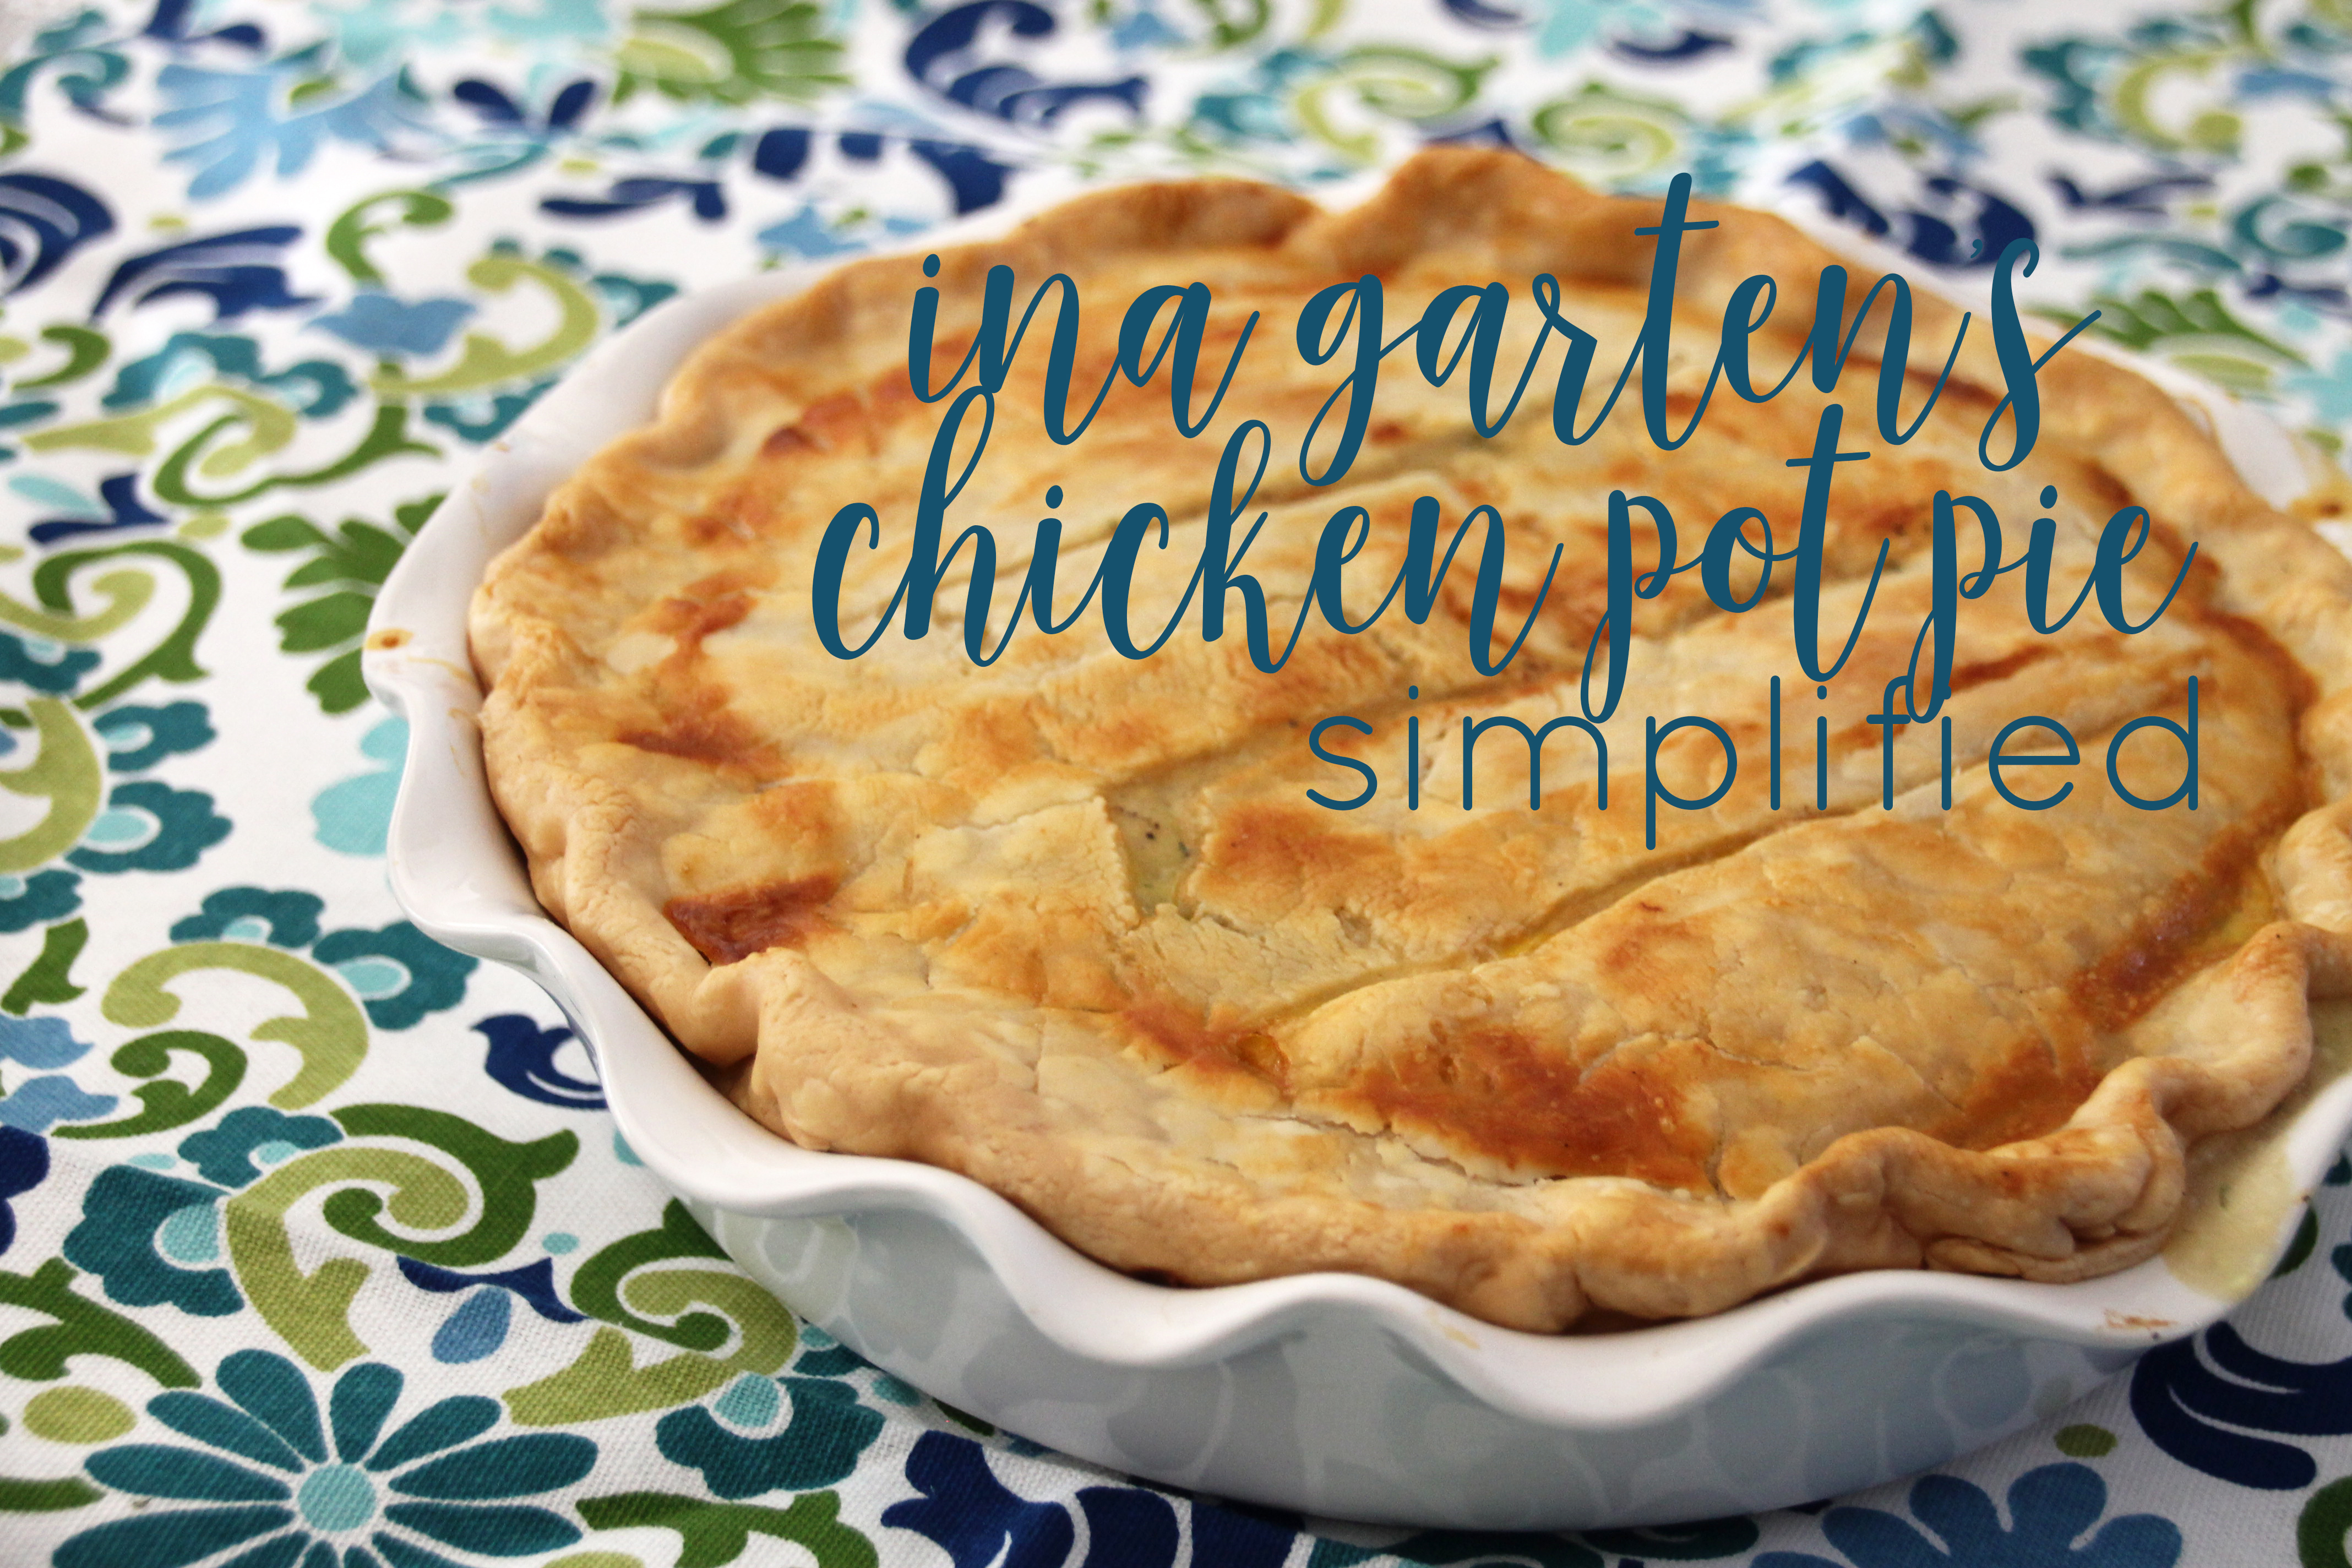 ina garten's chicken pot pie simplified | as gold as it gets